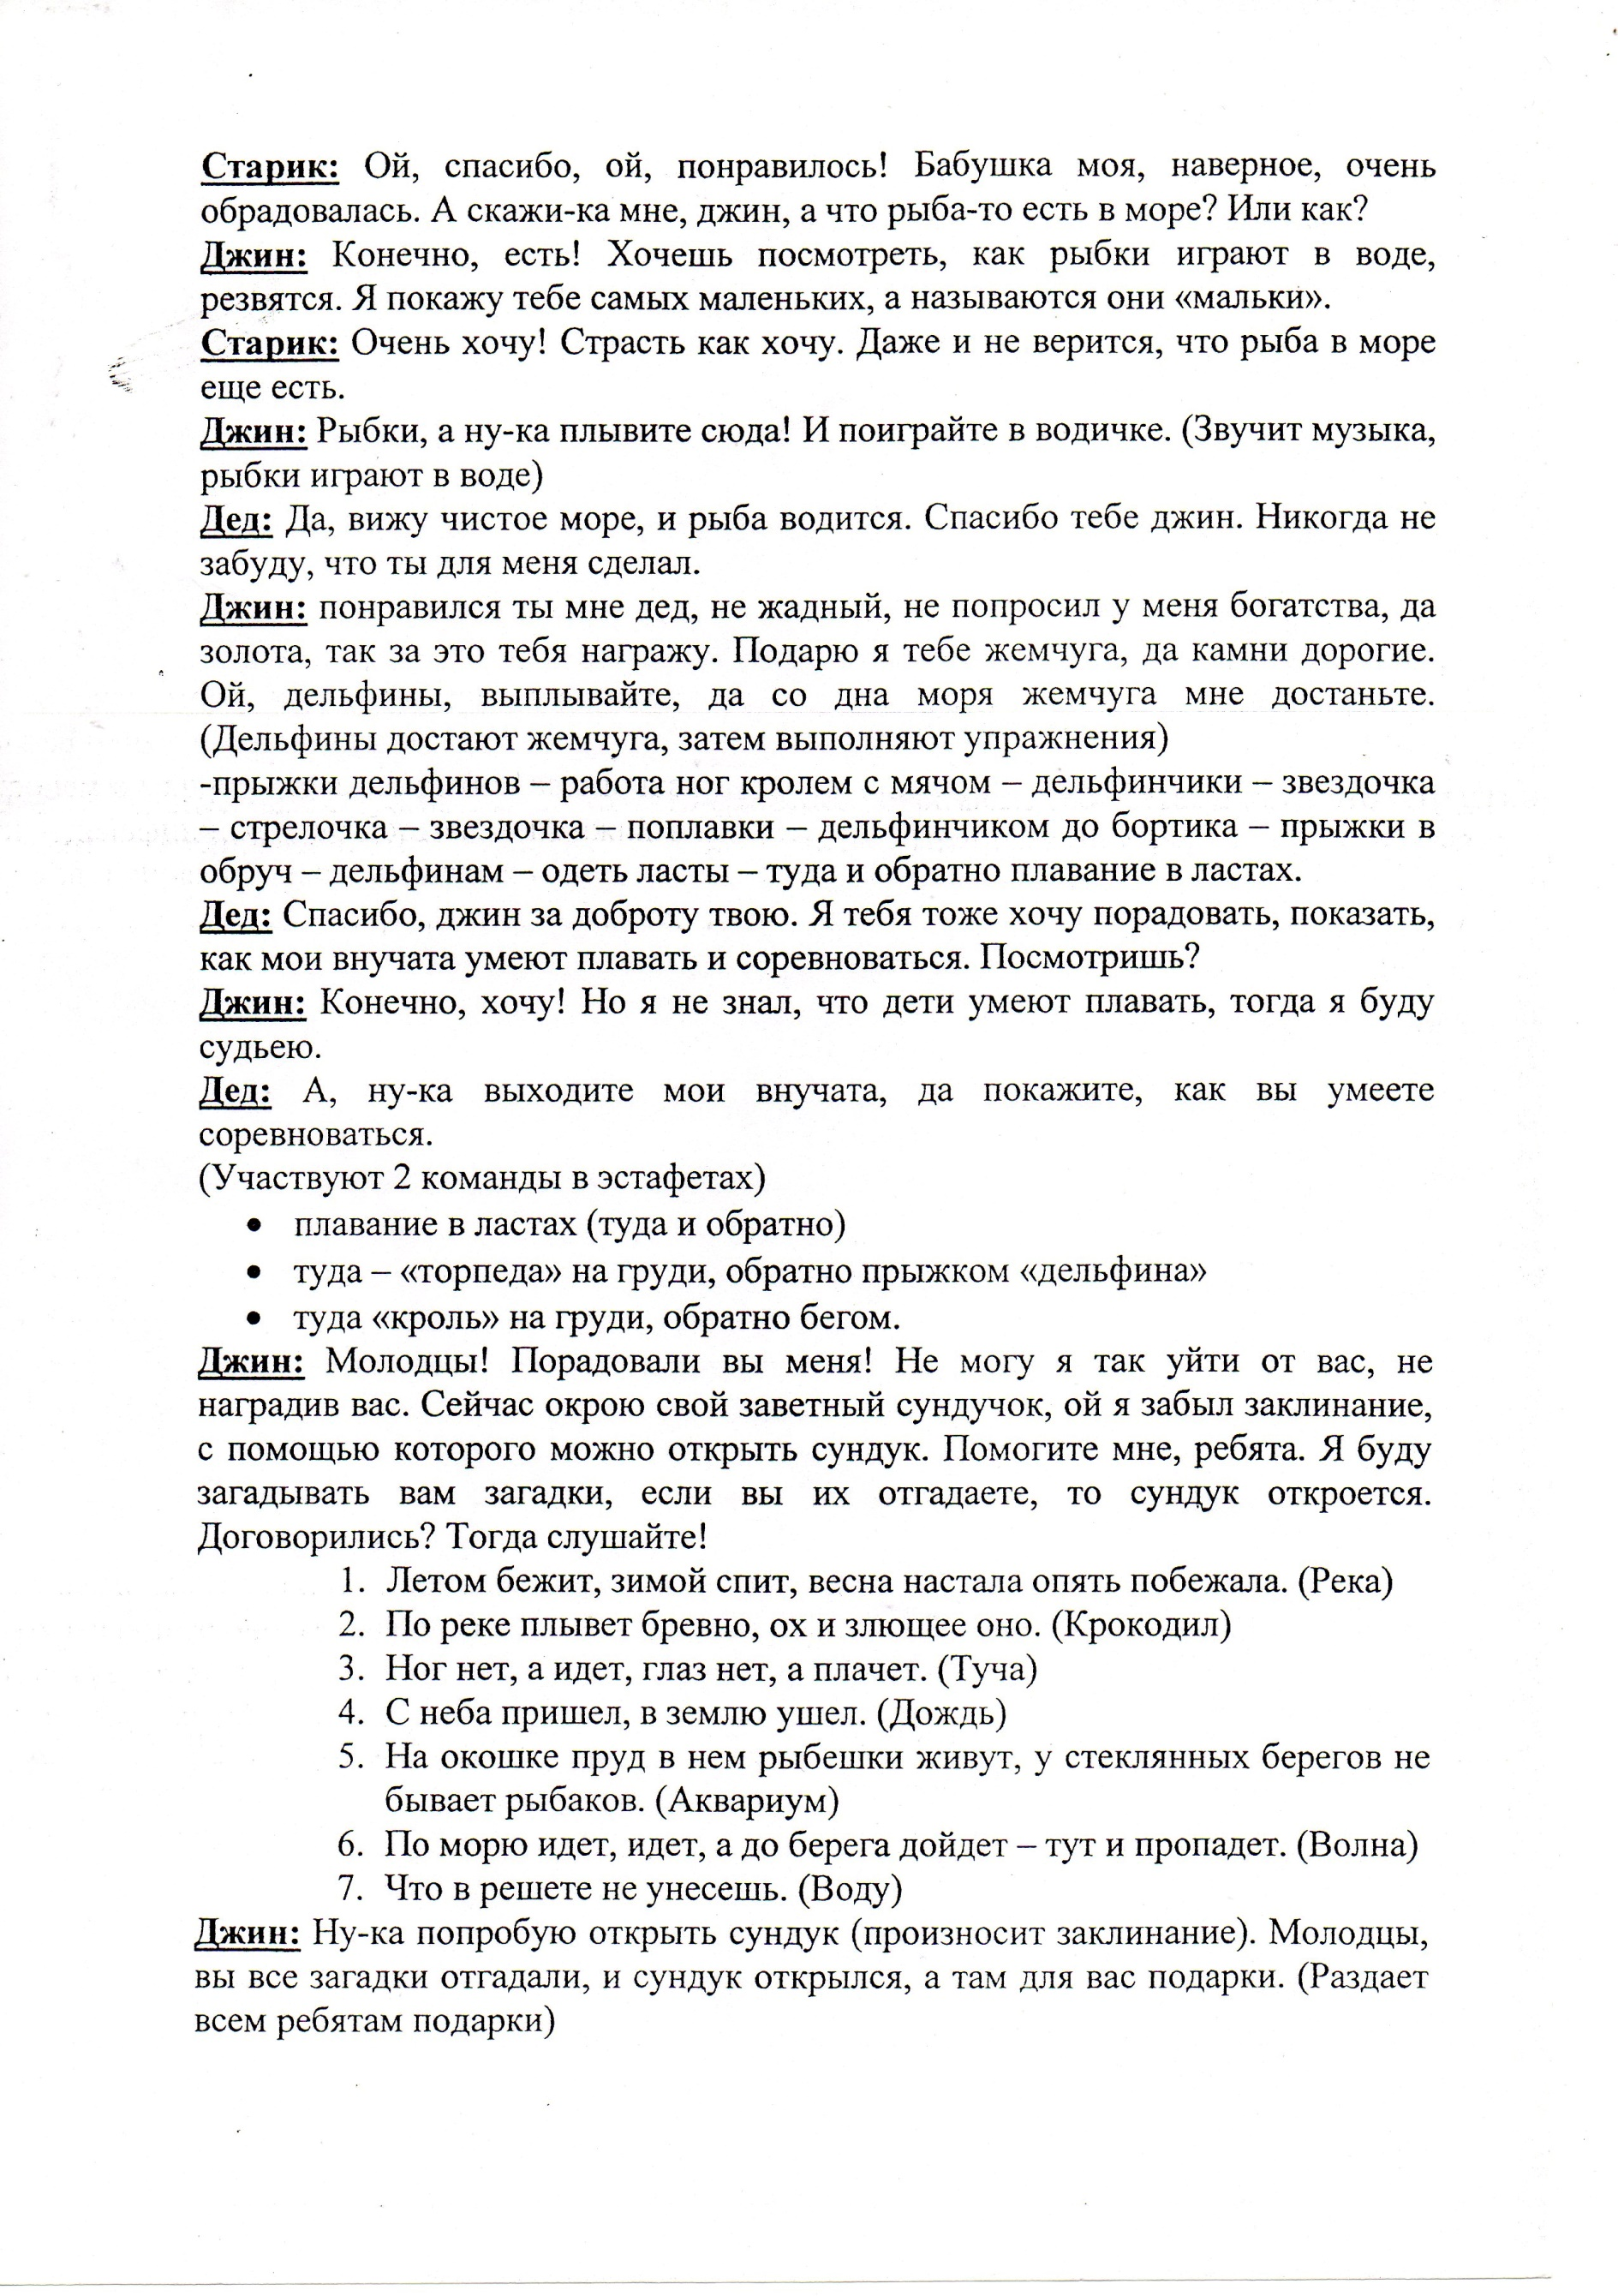 C:\Users\км\Pictures\img070.jpg